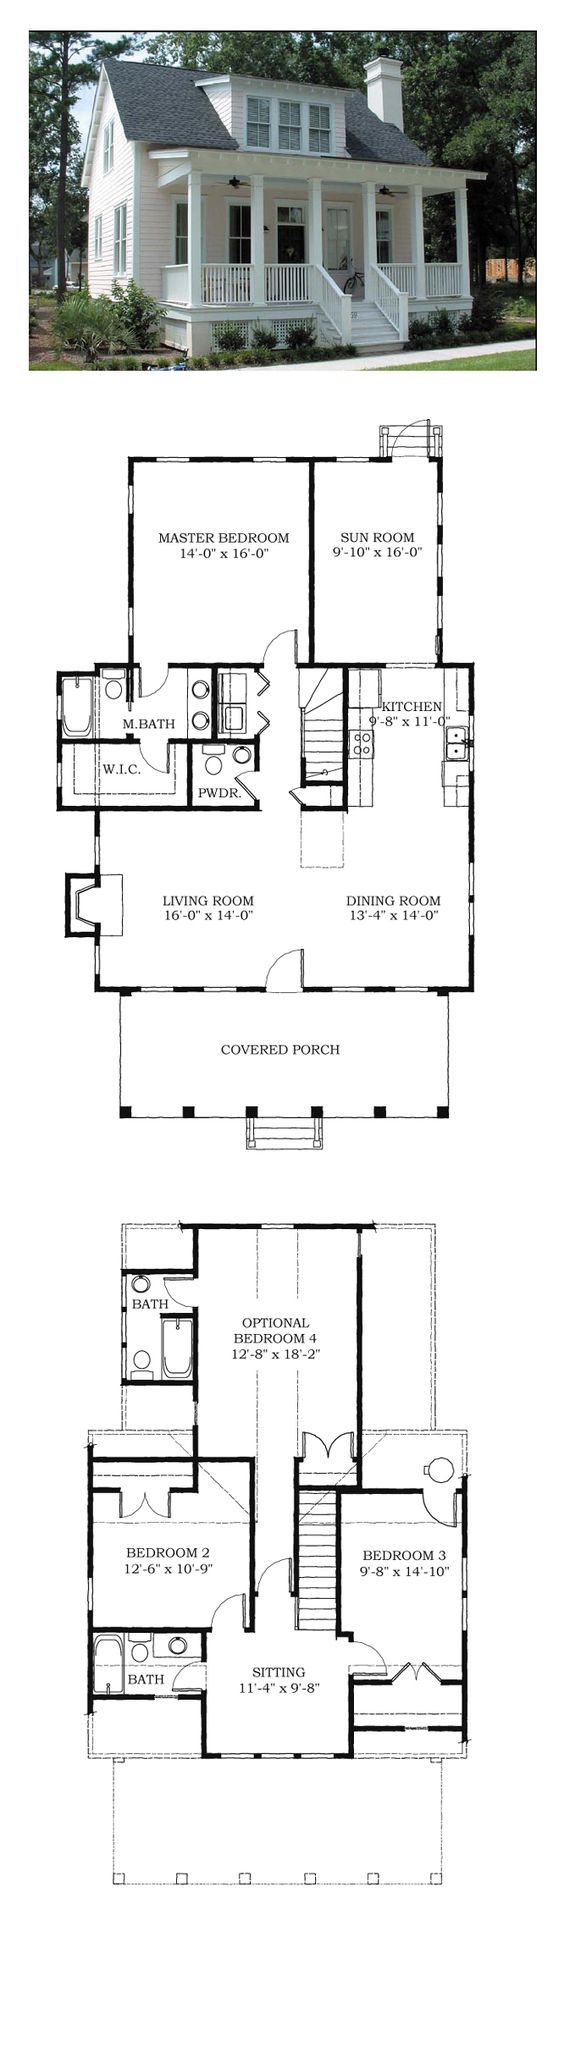 37 best small houses images on pinterest small houses small 37 best small houses images on pinterest small houses small house plans and cottage floor plans